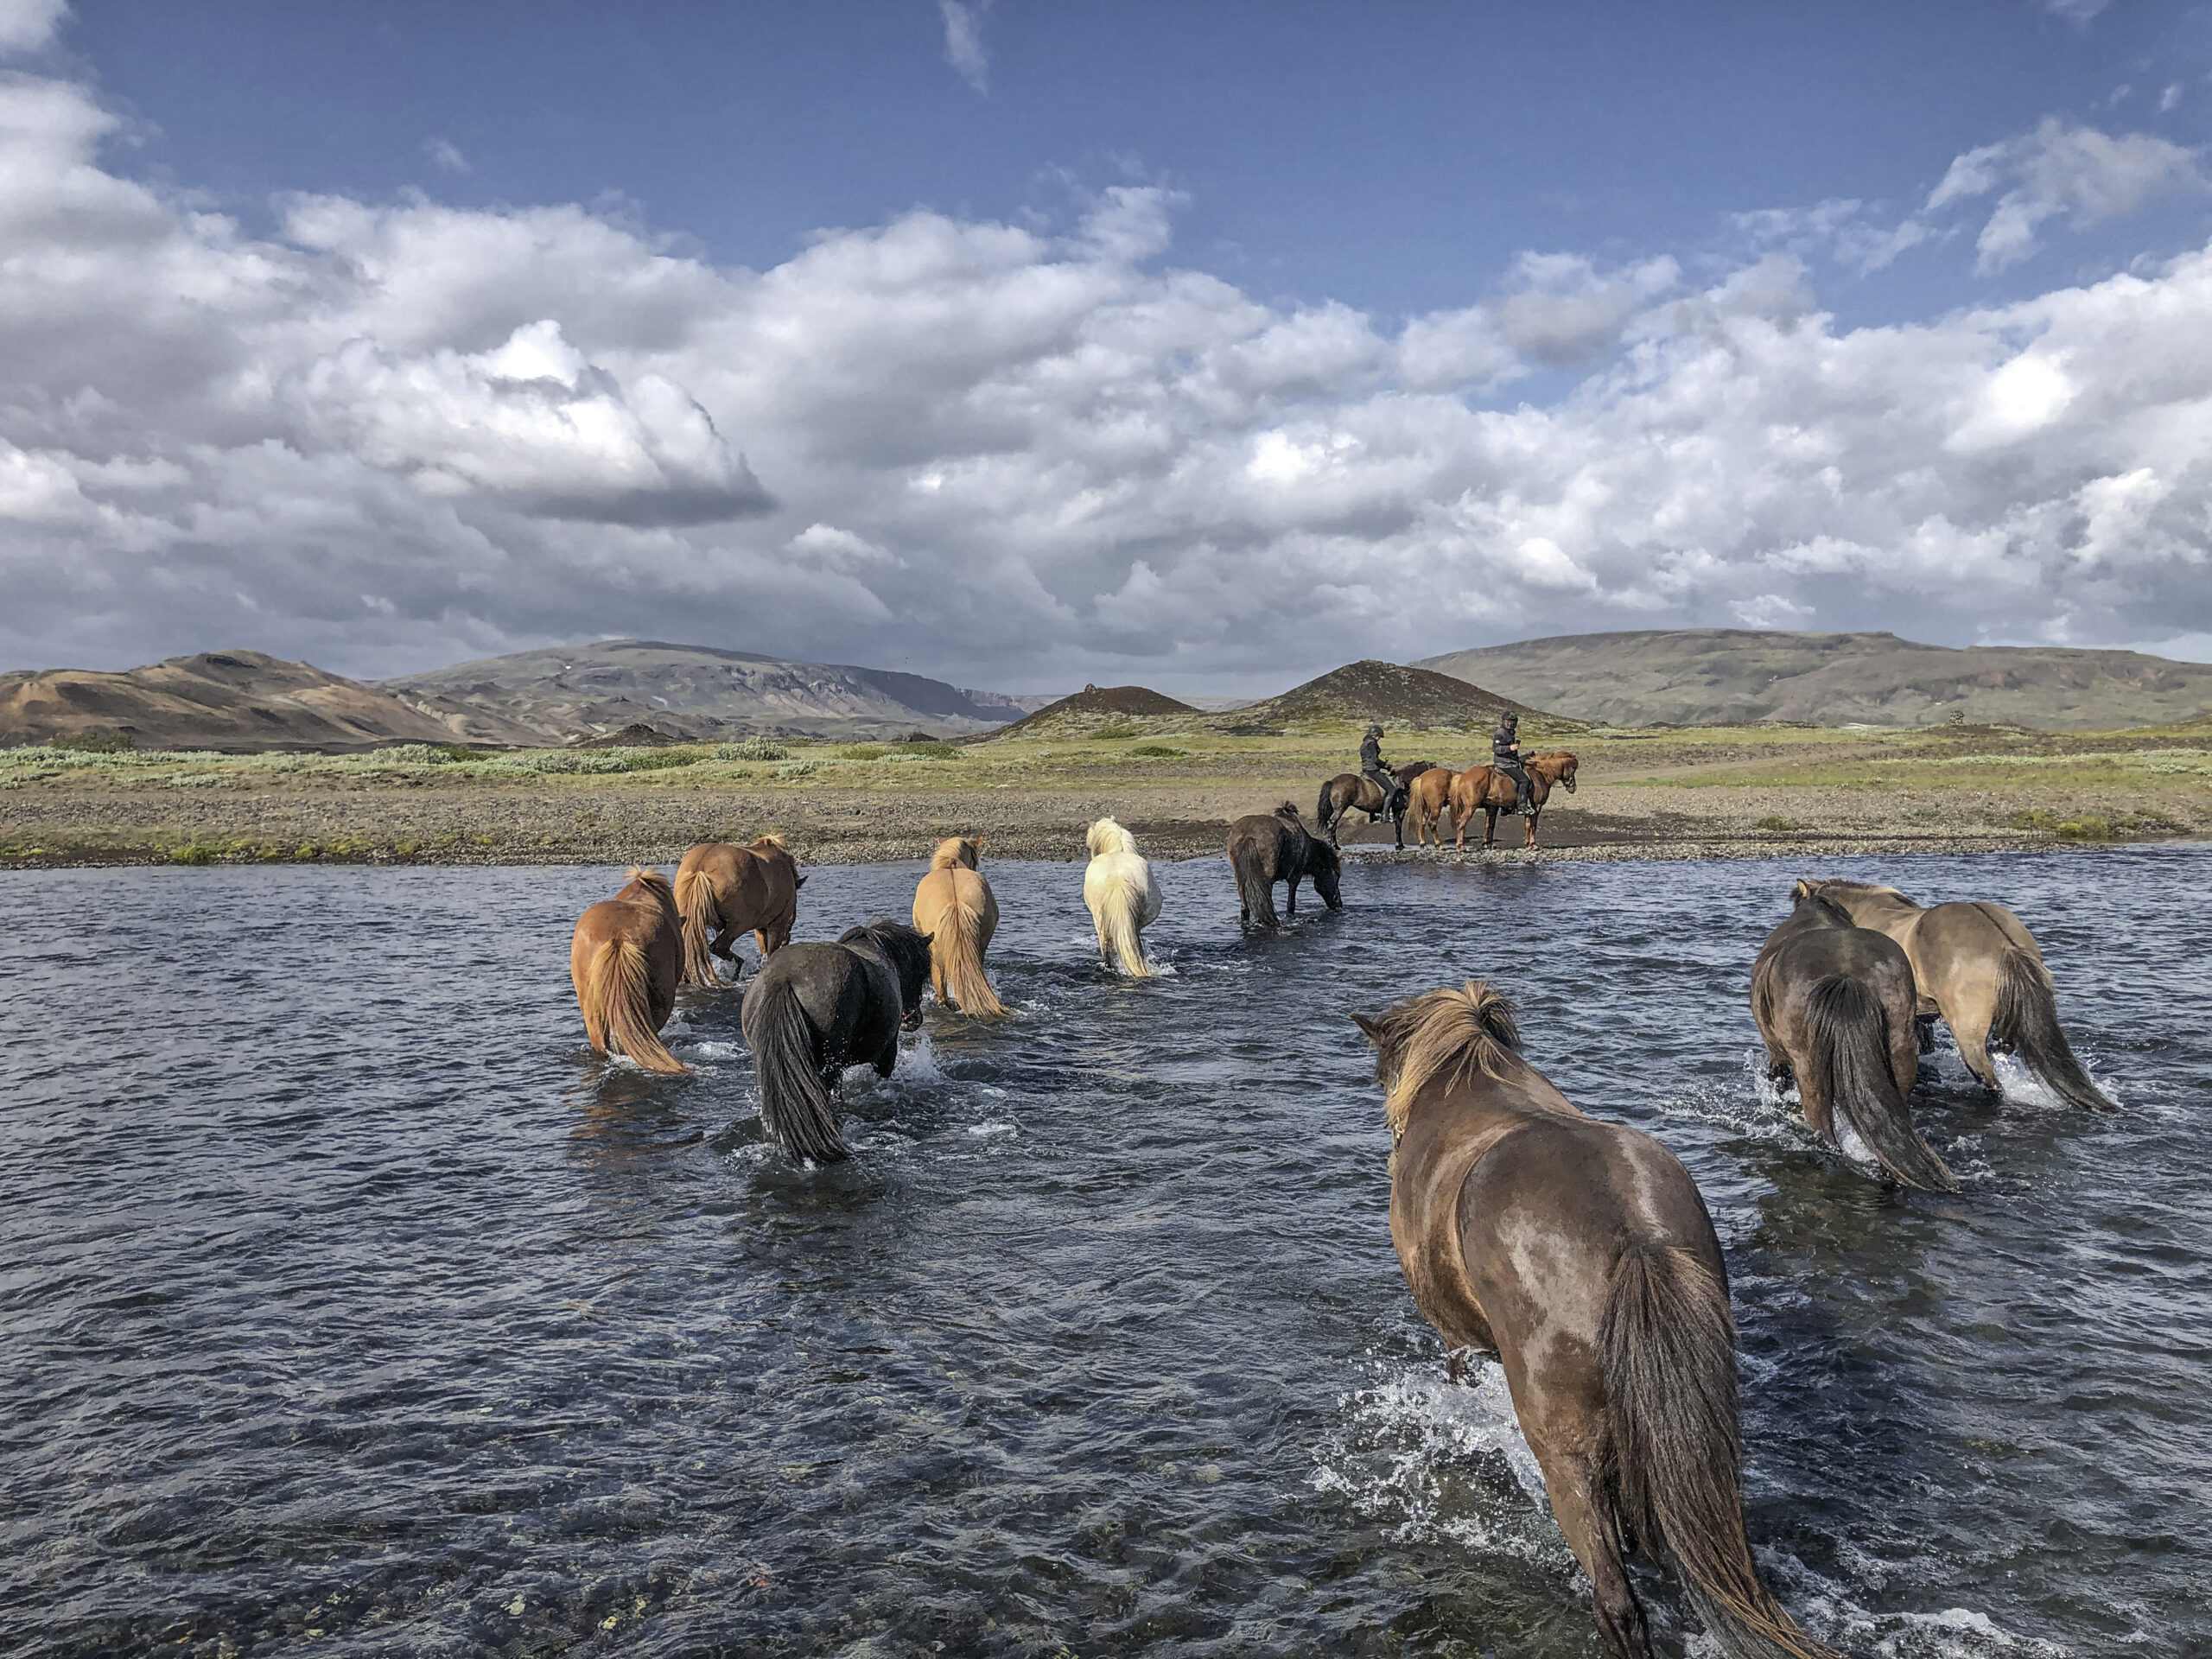 Riding tours in Iceland